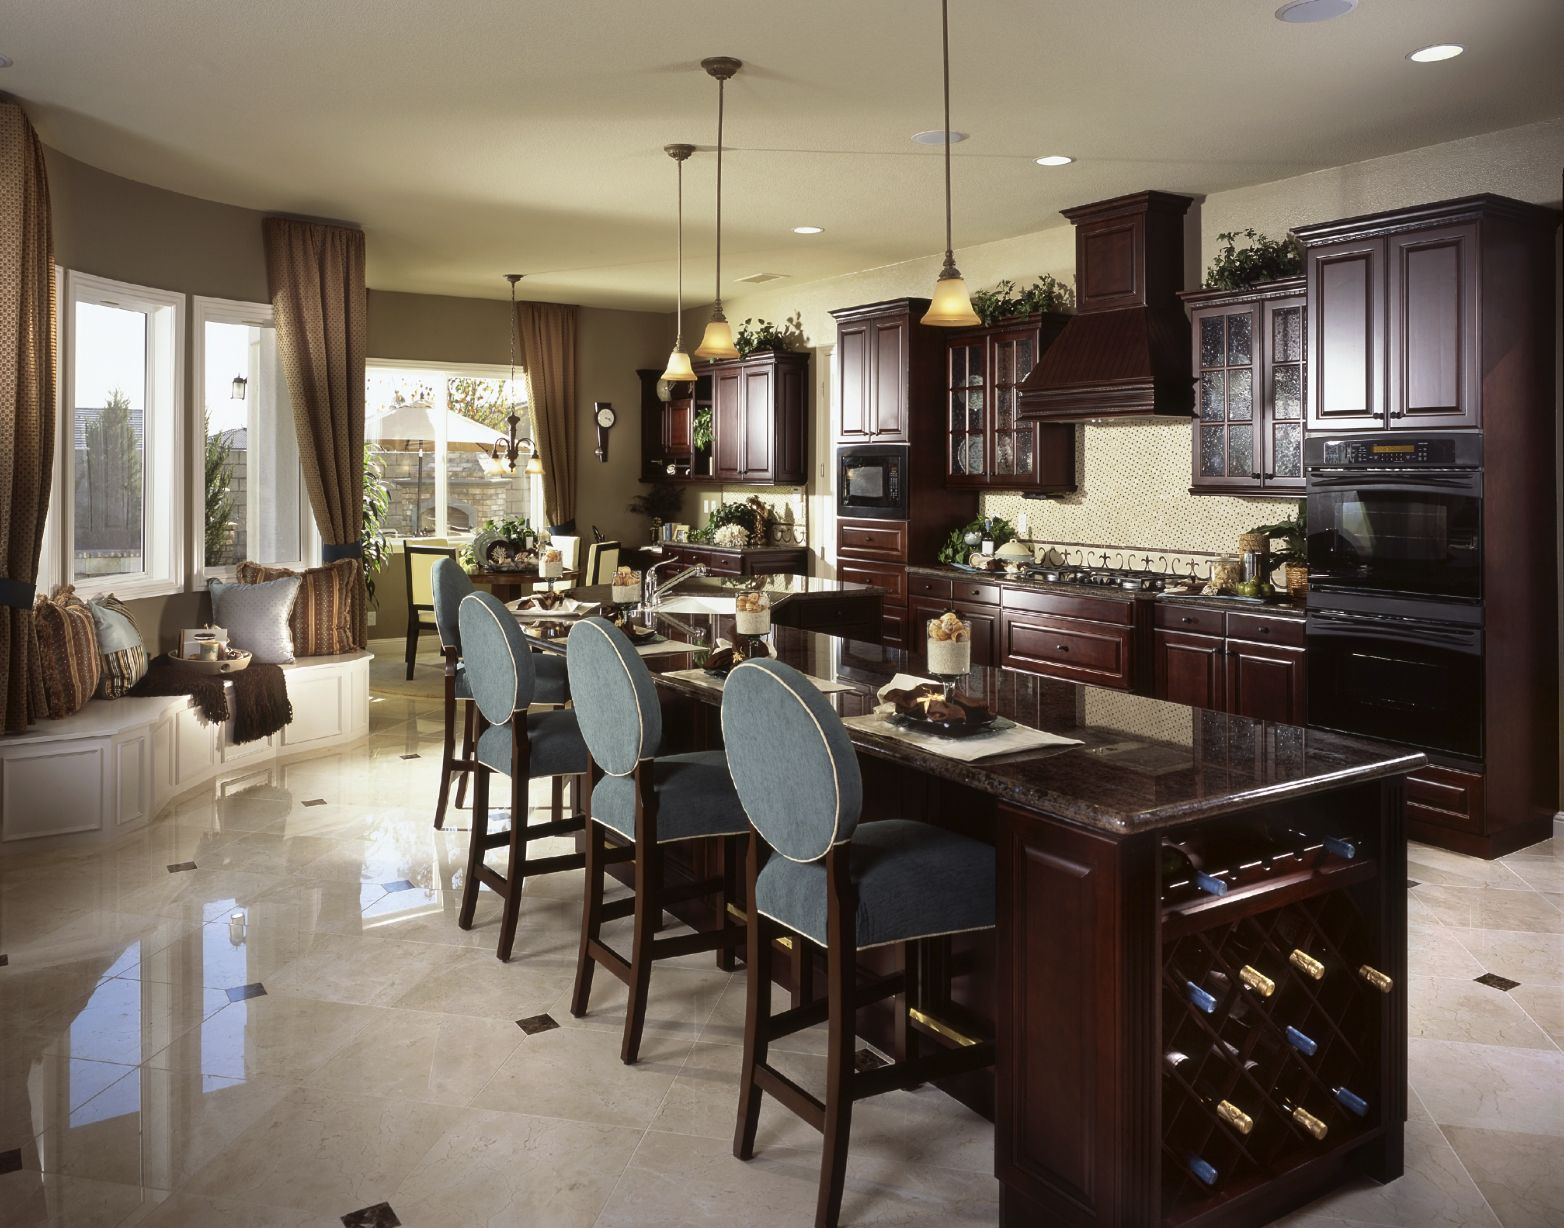 84 custom luxury kitchen island ideas & designs (pictures